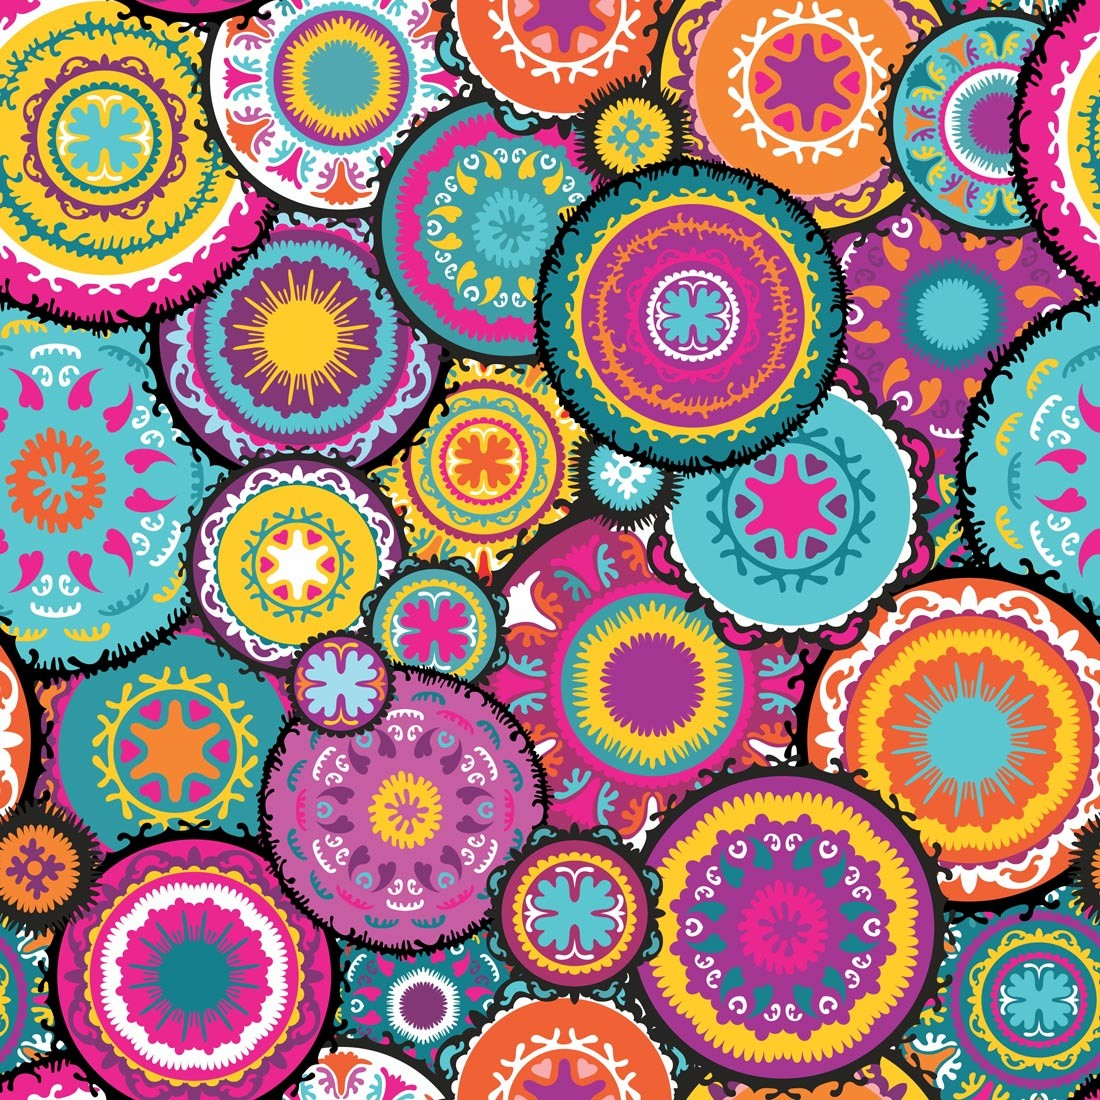 Download Mandalas Wallpaper Gallery